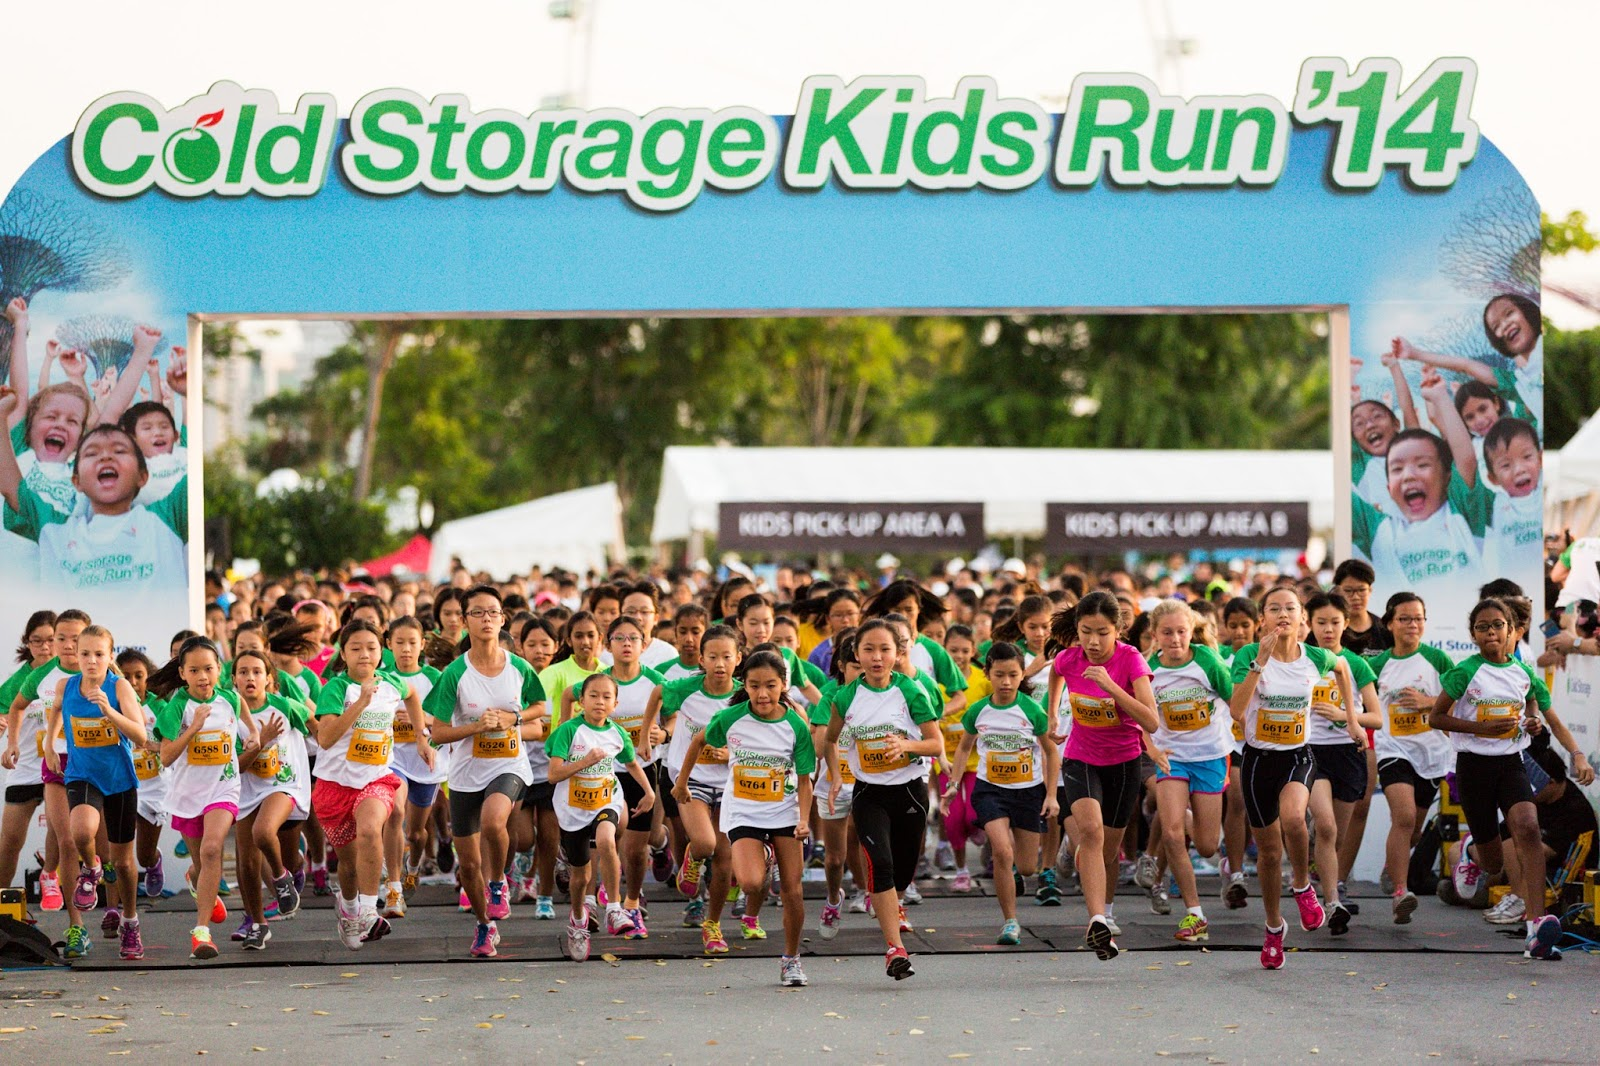 Cold Storage Kids Run 2015 The Wacky Duo Singapore